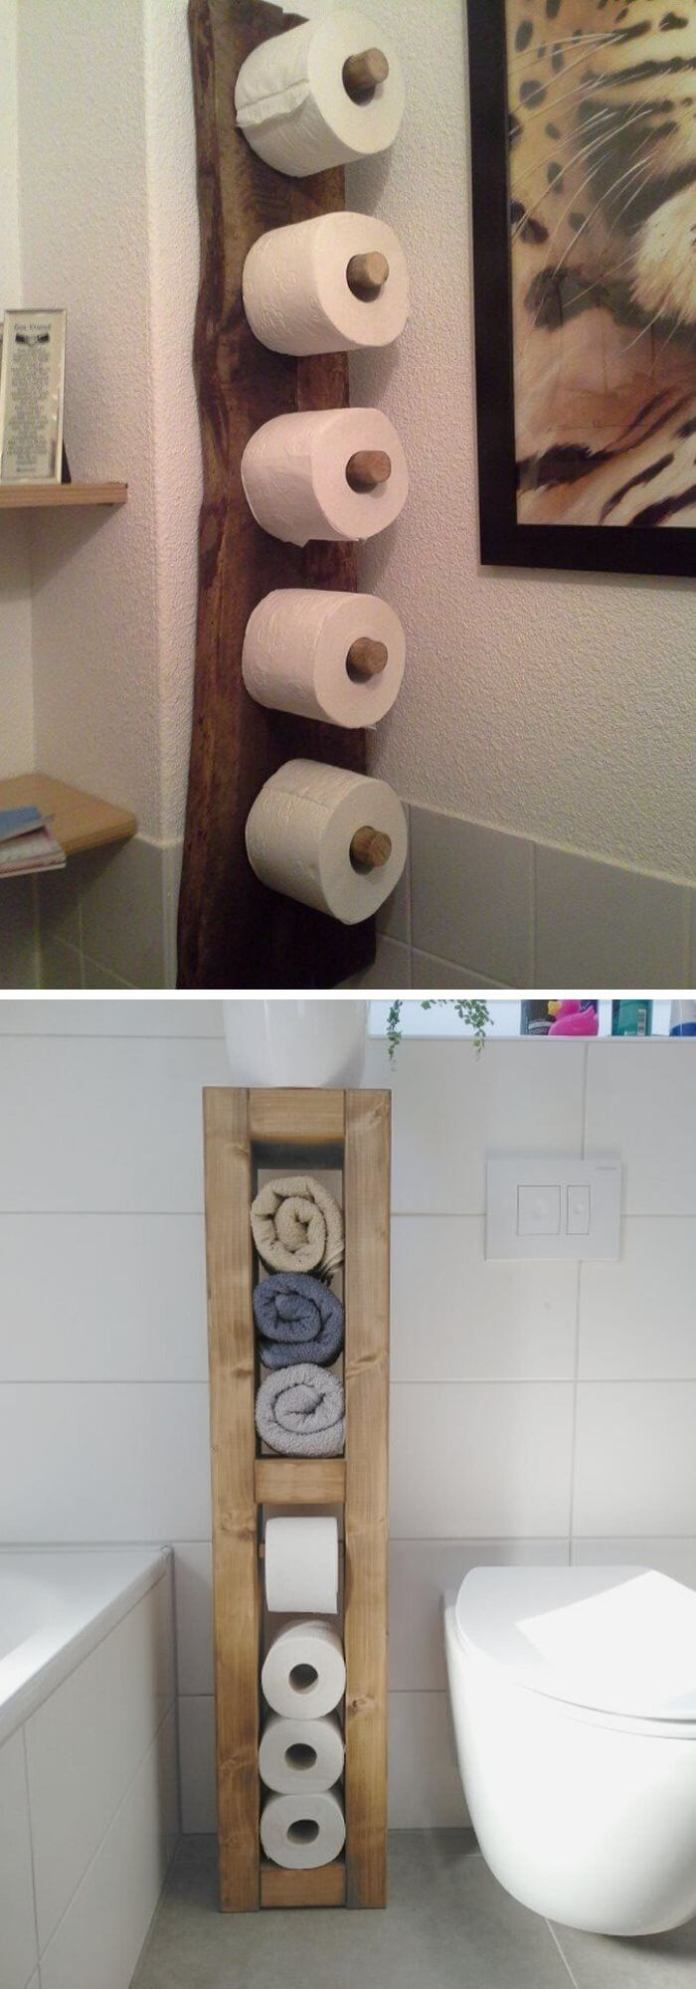 Cozy toilet with wooden shelf for tissue